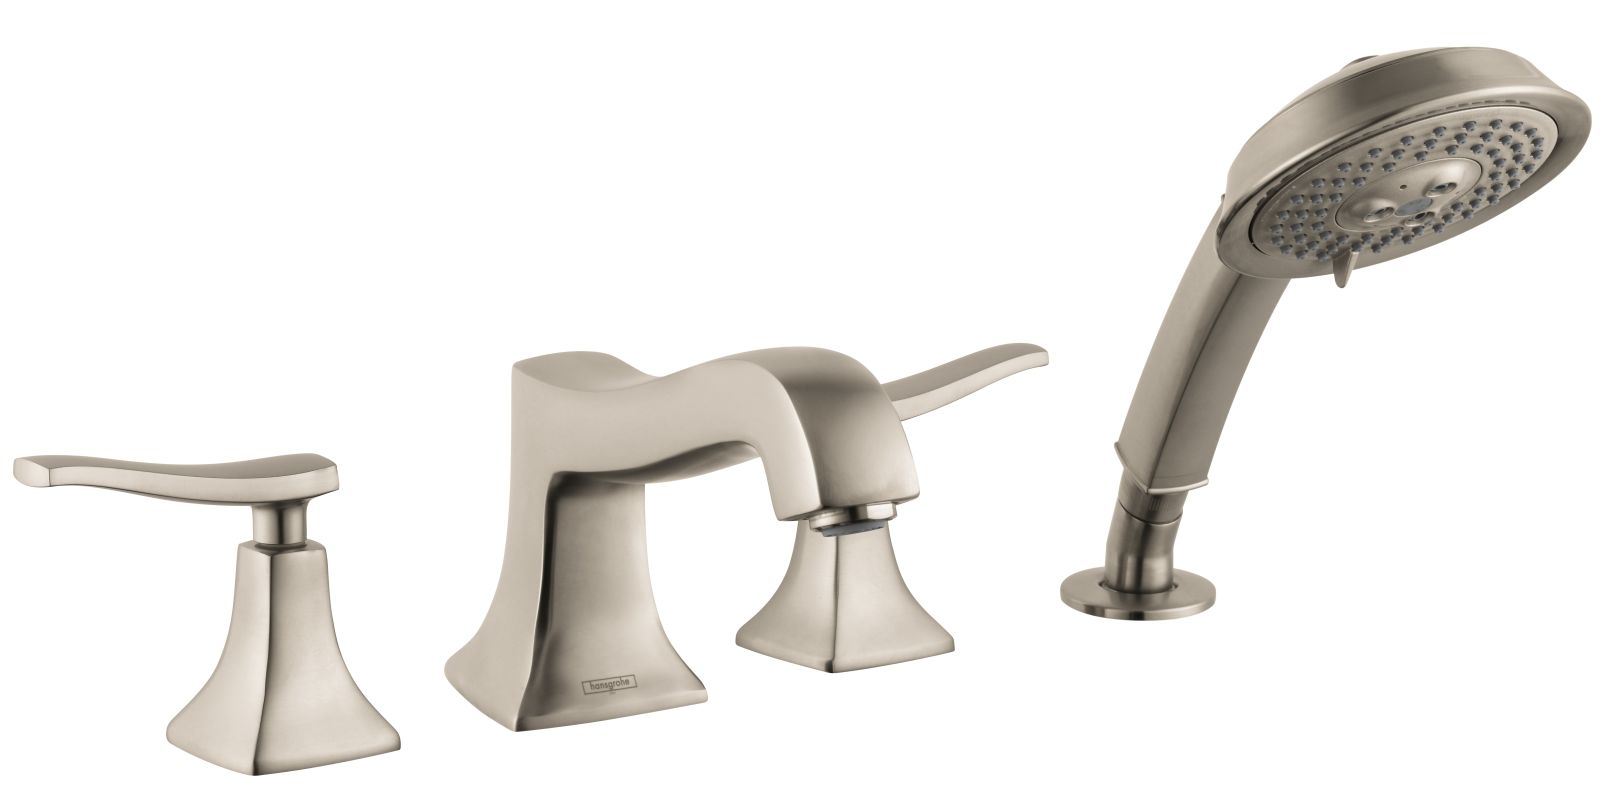 Faucet.com   31314001 in Chrome by Hansgrohe